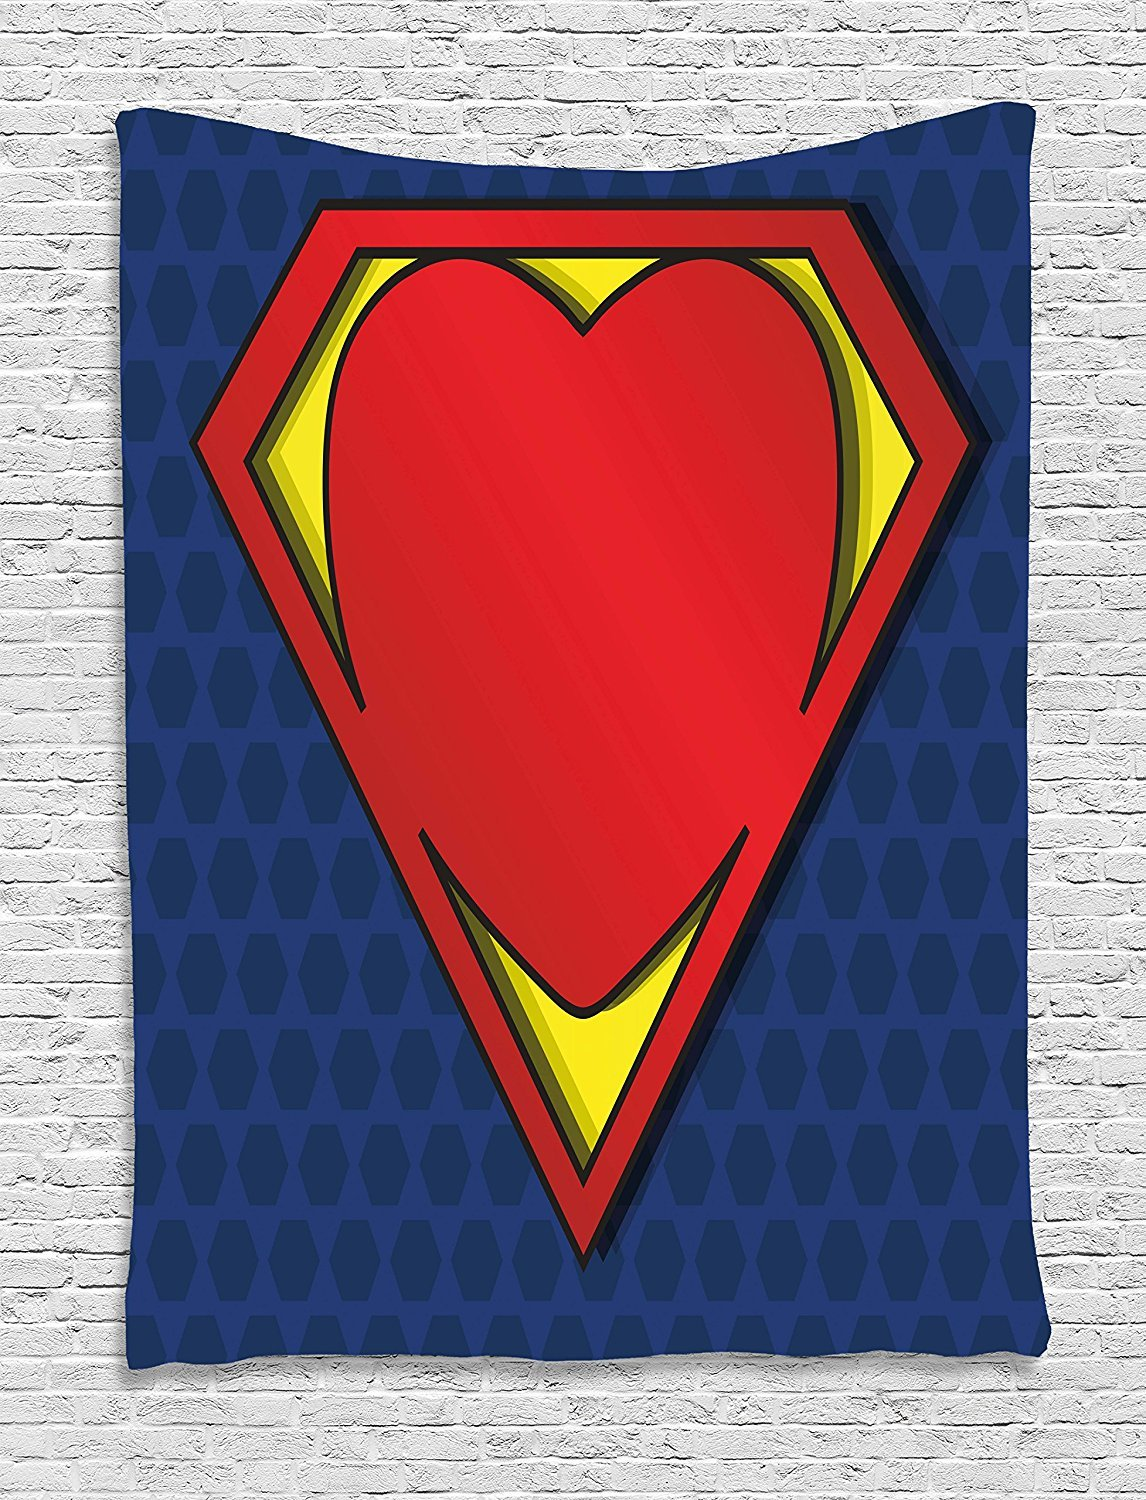 asddcdfdd Superhero Tapestry, My Super Man Shield Logo with Heart Figure Valantines Romance Print, Wall Hanging for Bedroom Living Room Dorm, 60 W X 80 L Inches, Night Blue Red Yellow